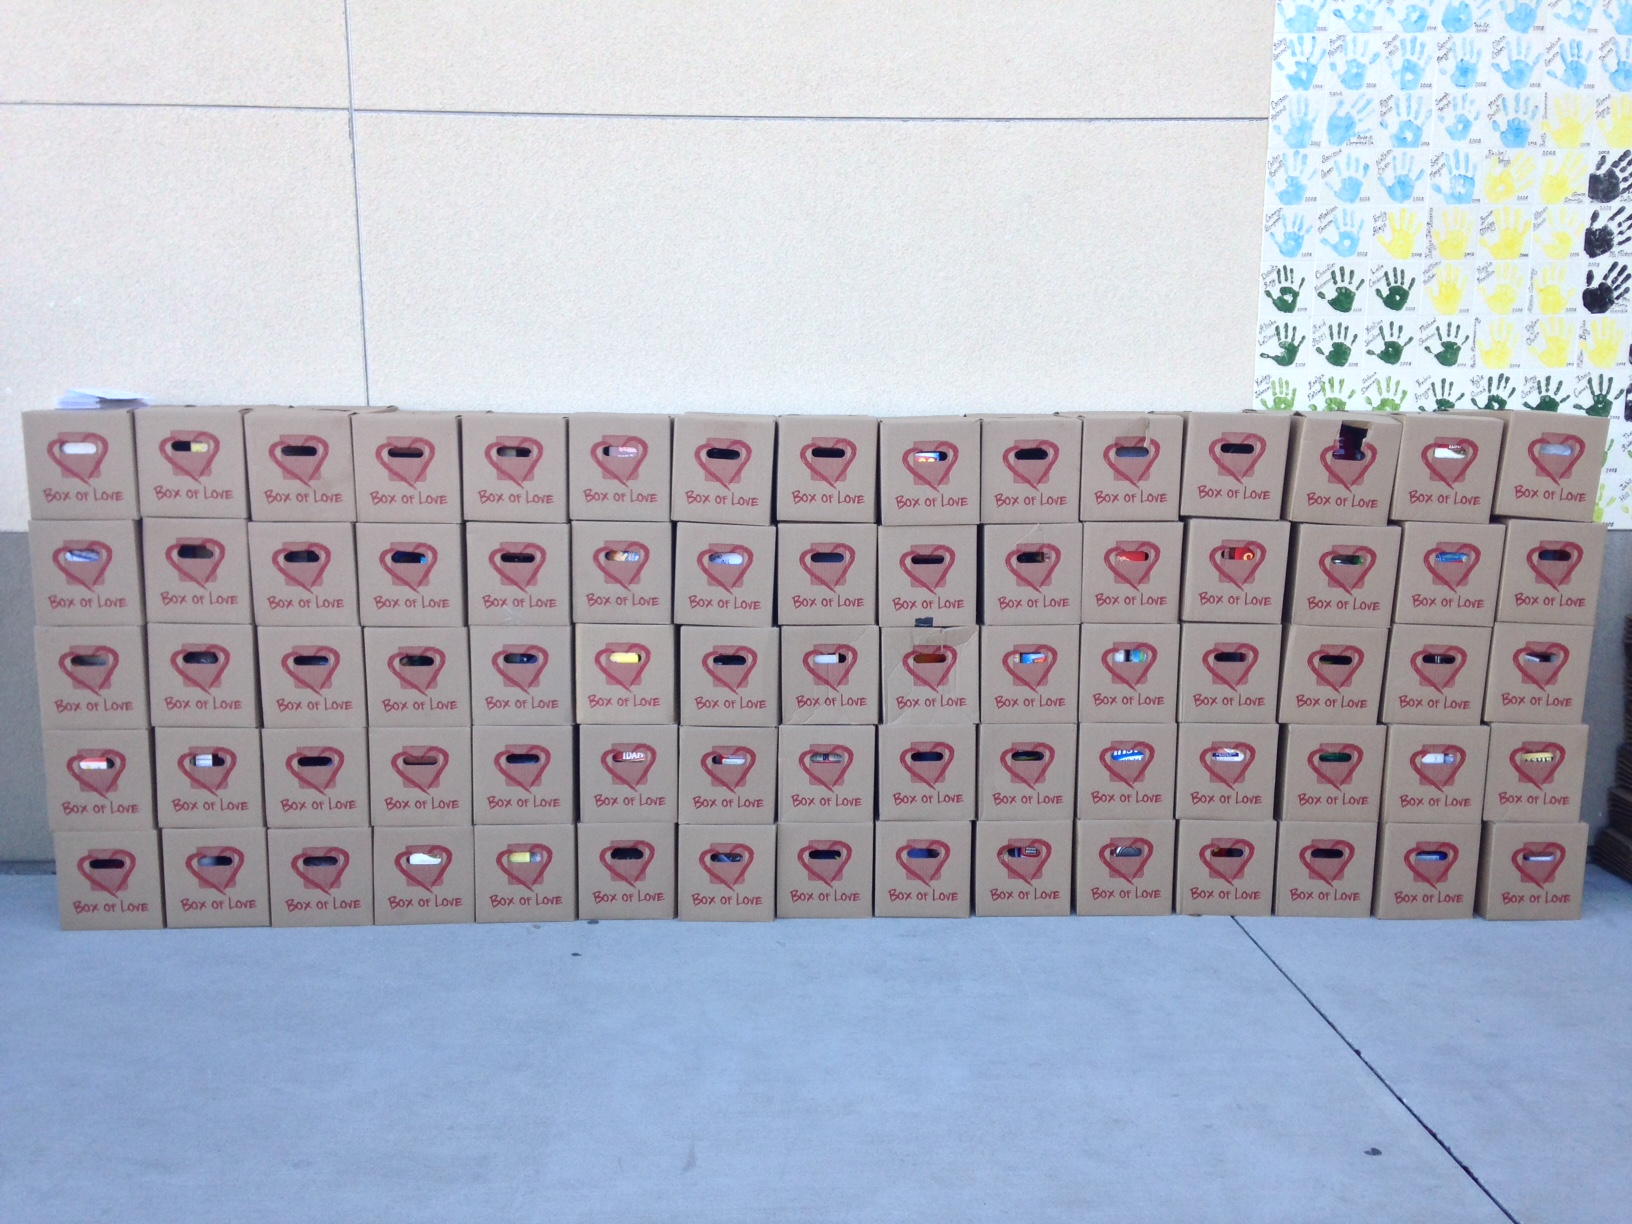 The wall of boxes